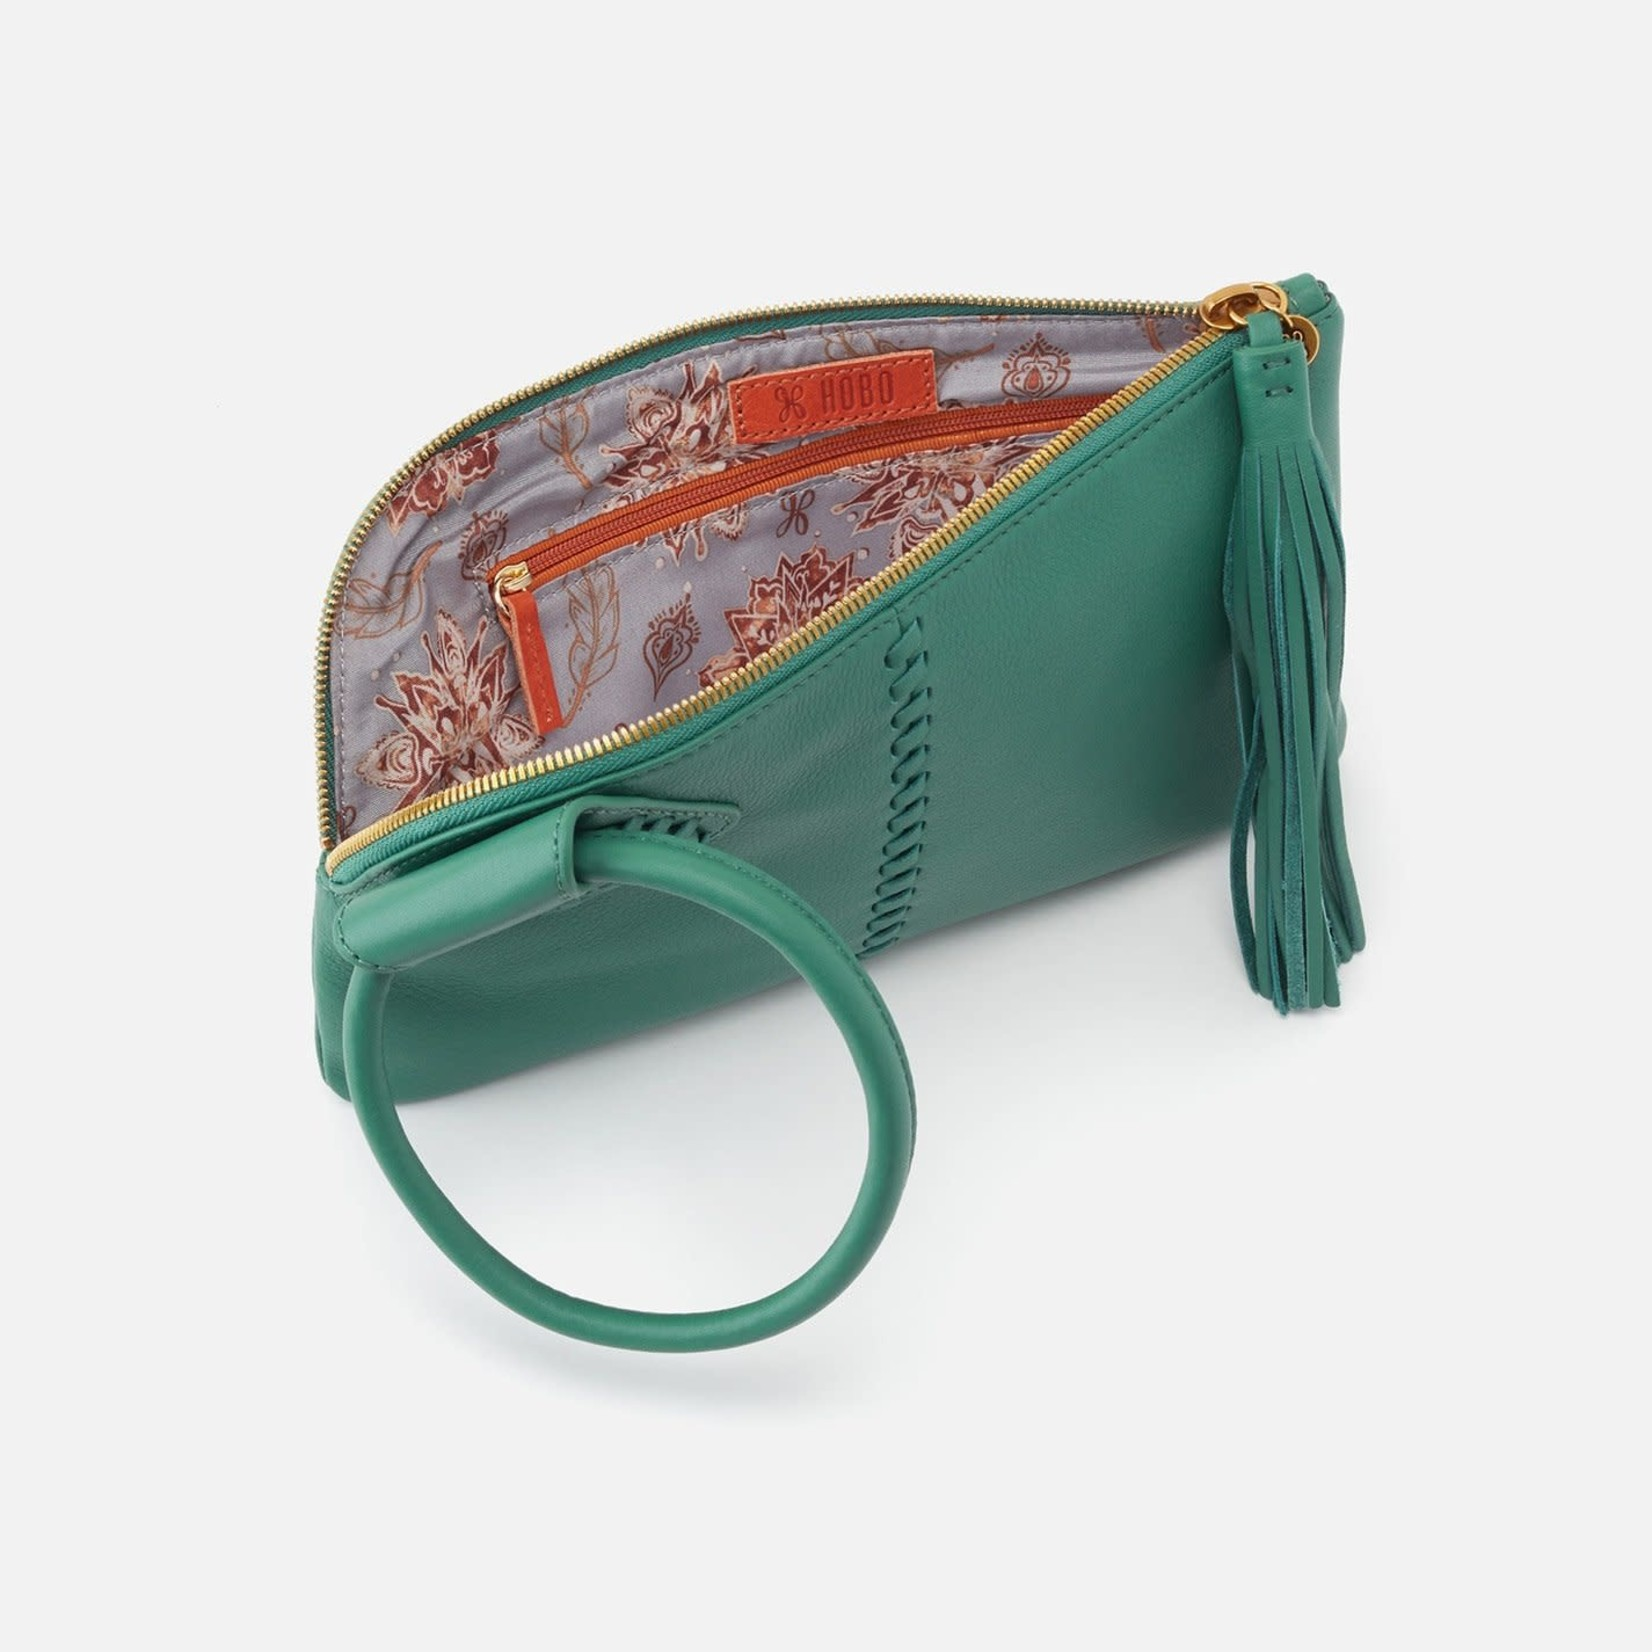 HOBO Sable Garden Green Leather Wristlet w/Loop